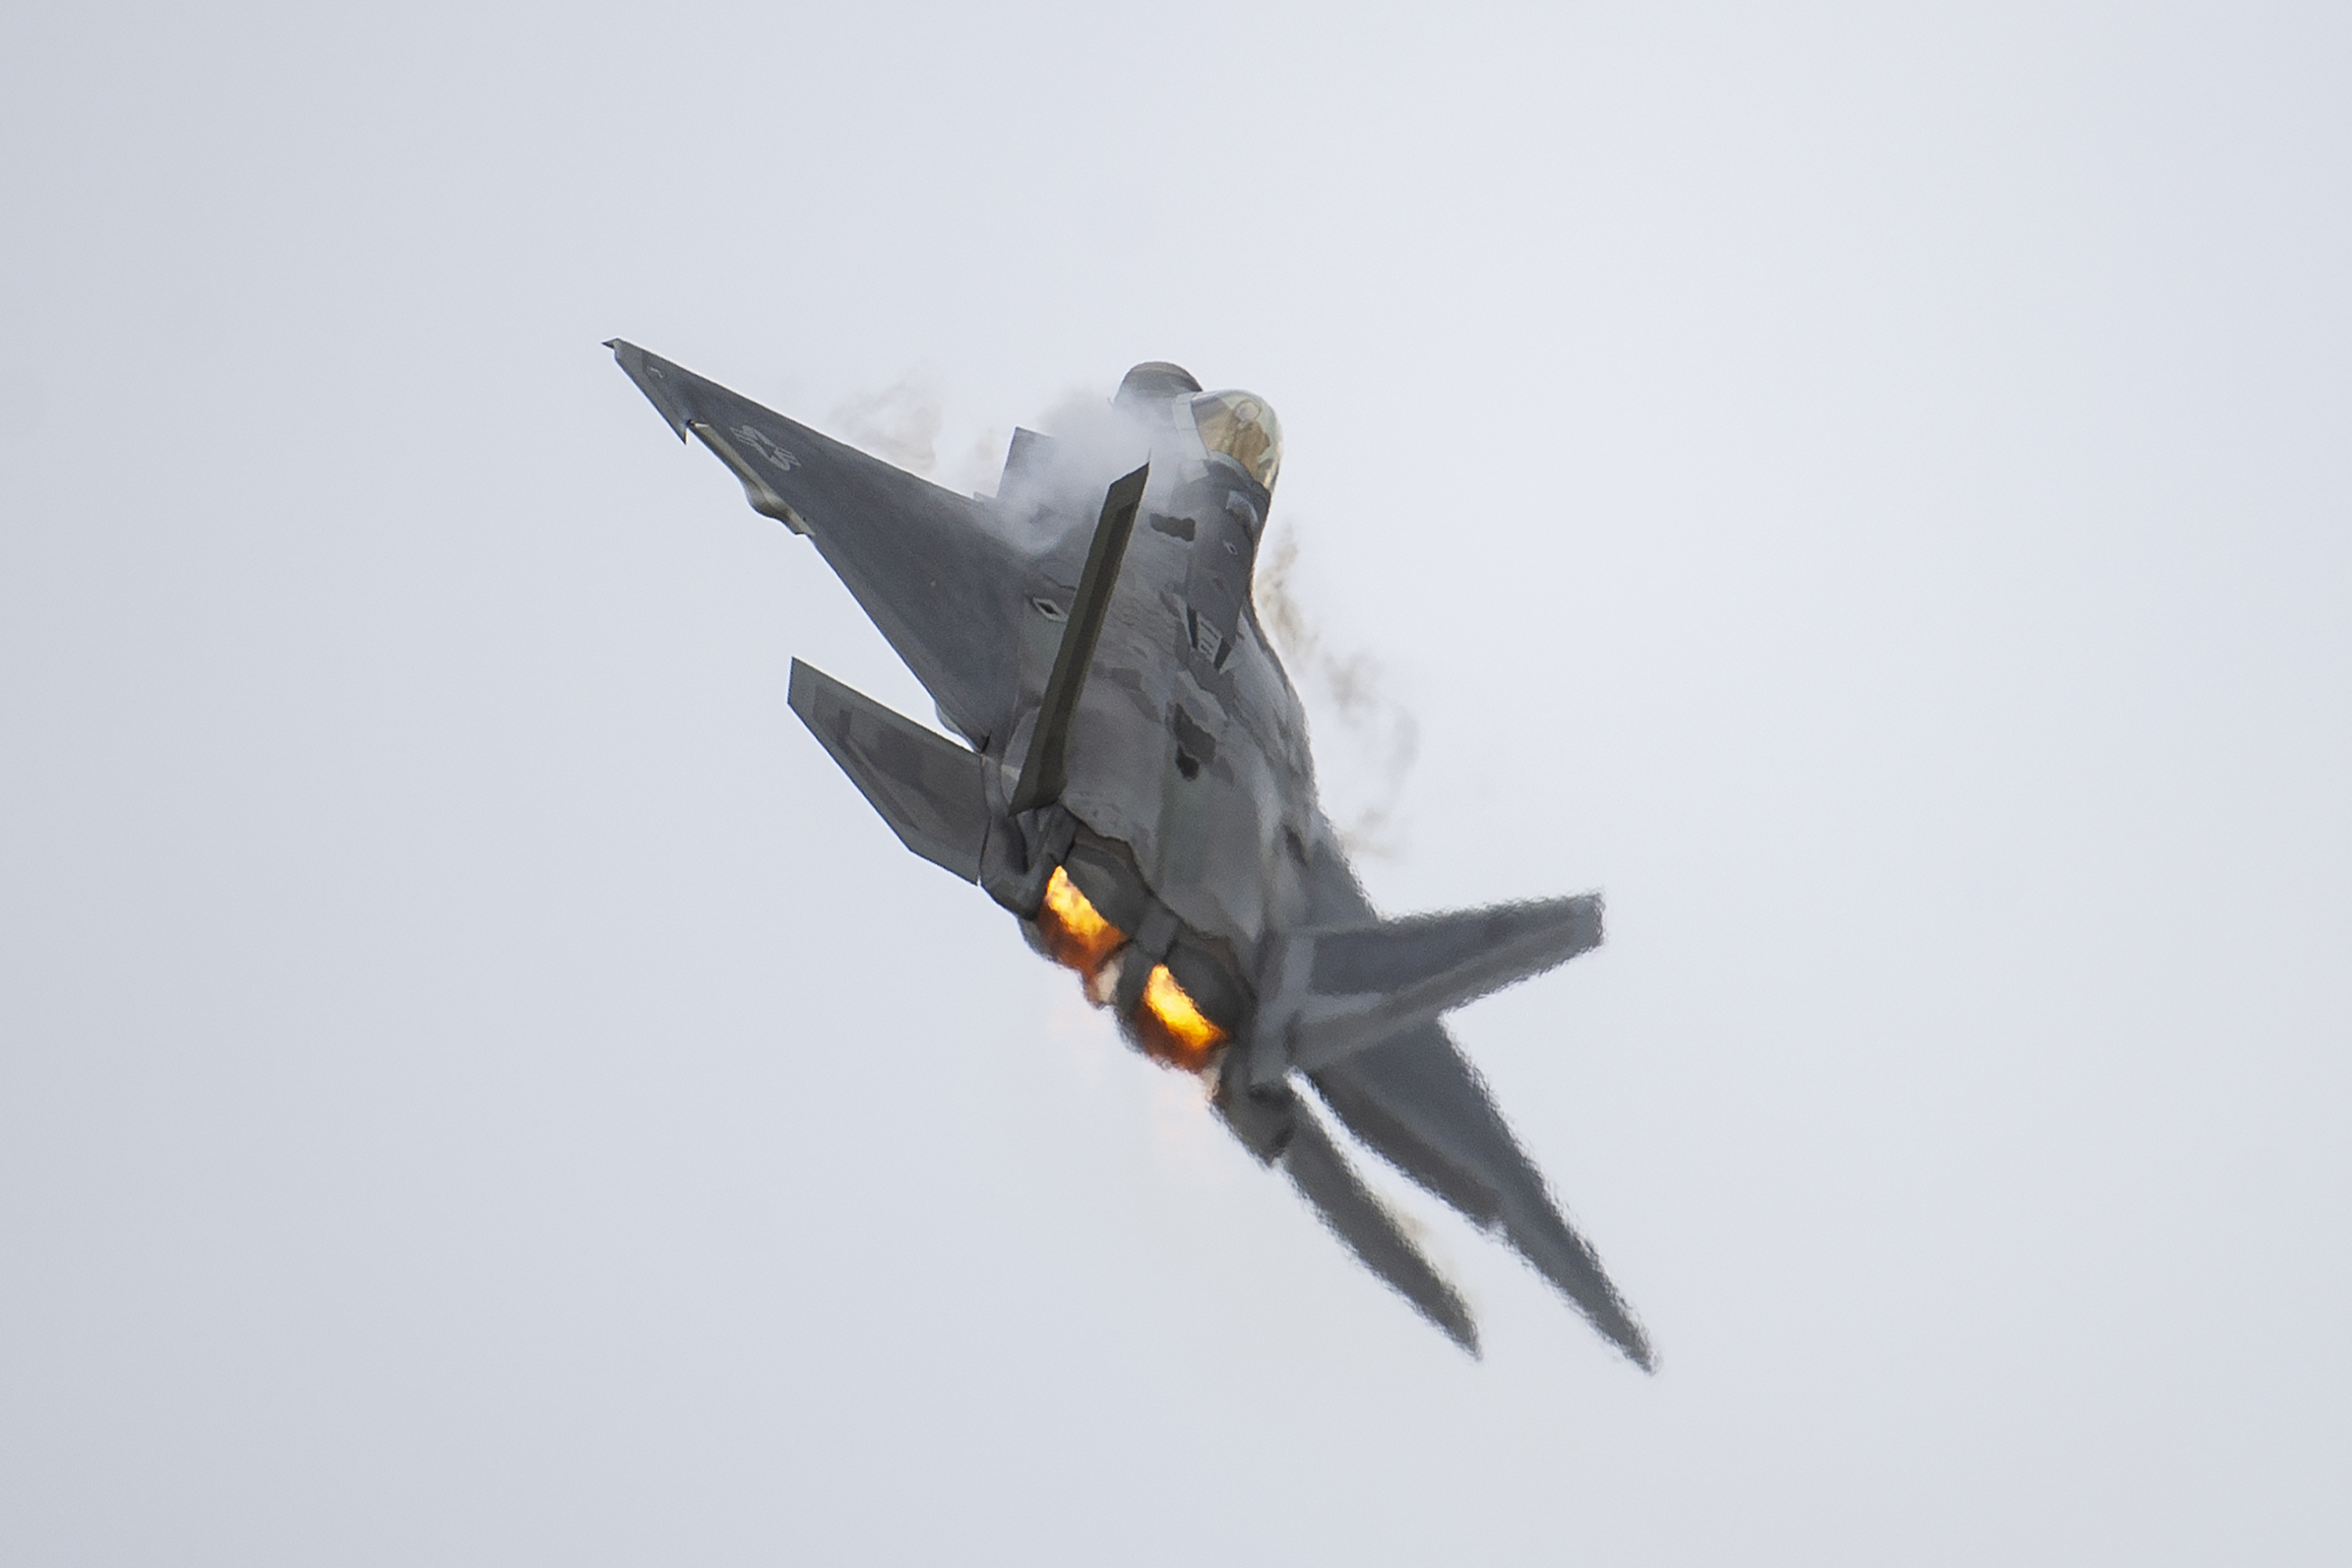 An F-22 Raptor makes a high-speed pass showcasing the Air Combat Command F-22 Demonstration Team during the Special Needs and Department of Defense Family Day at the Arctic Thunder Open House, June 29, 2018. This biennial event hosted by Joint Base Elmendorf-Richardson, Alaska, is one of the largest in the state and one of the premier aerial demonstrations in the world. The event features multiple performers and ground acts to include the JBER joint forces, U.S. Air Force F-22, and U.S. Air Force Thunderbirds demonstrations teams, June 30-July 1. (U.S. Air Force photo by Justin Connaher)